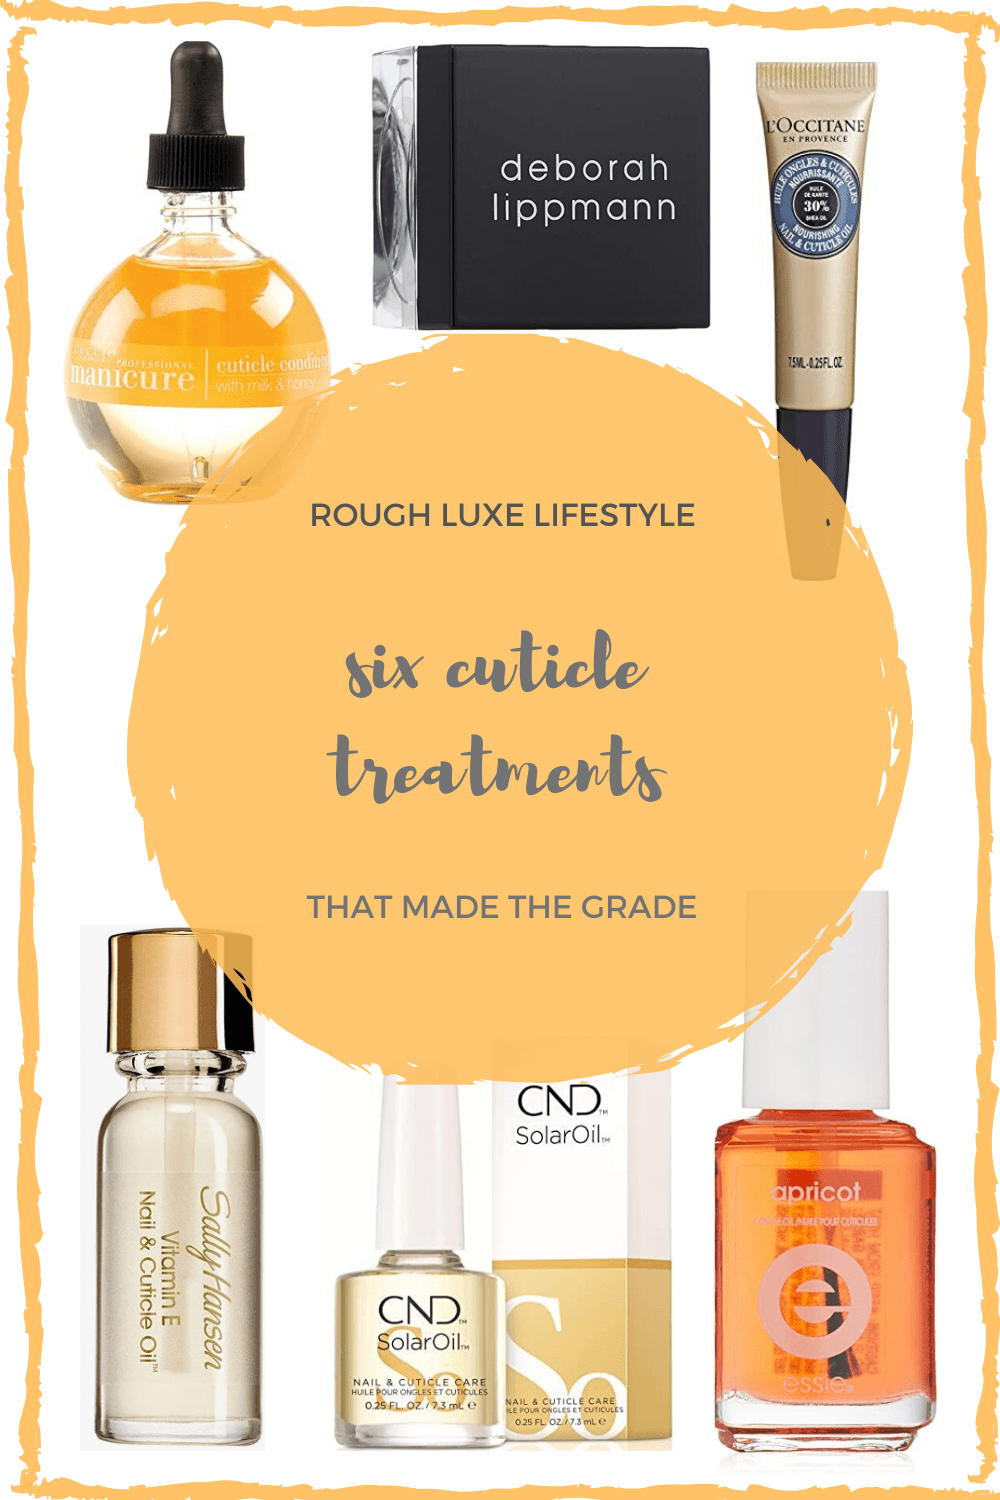 cuticle treatments that made the grade